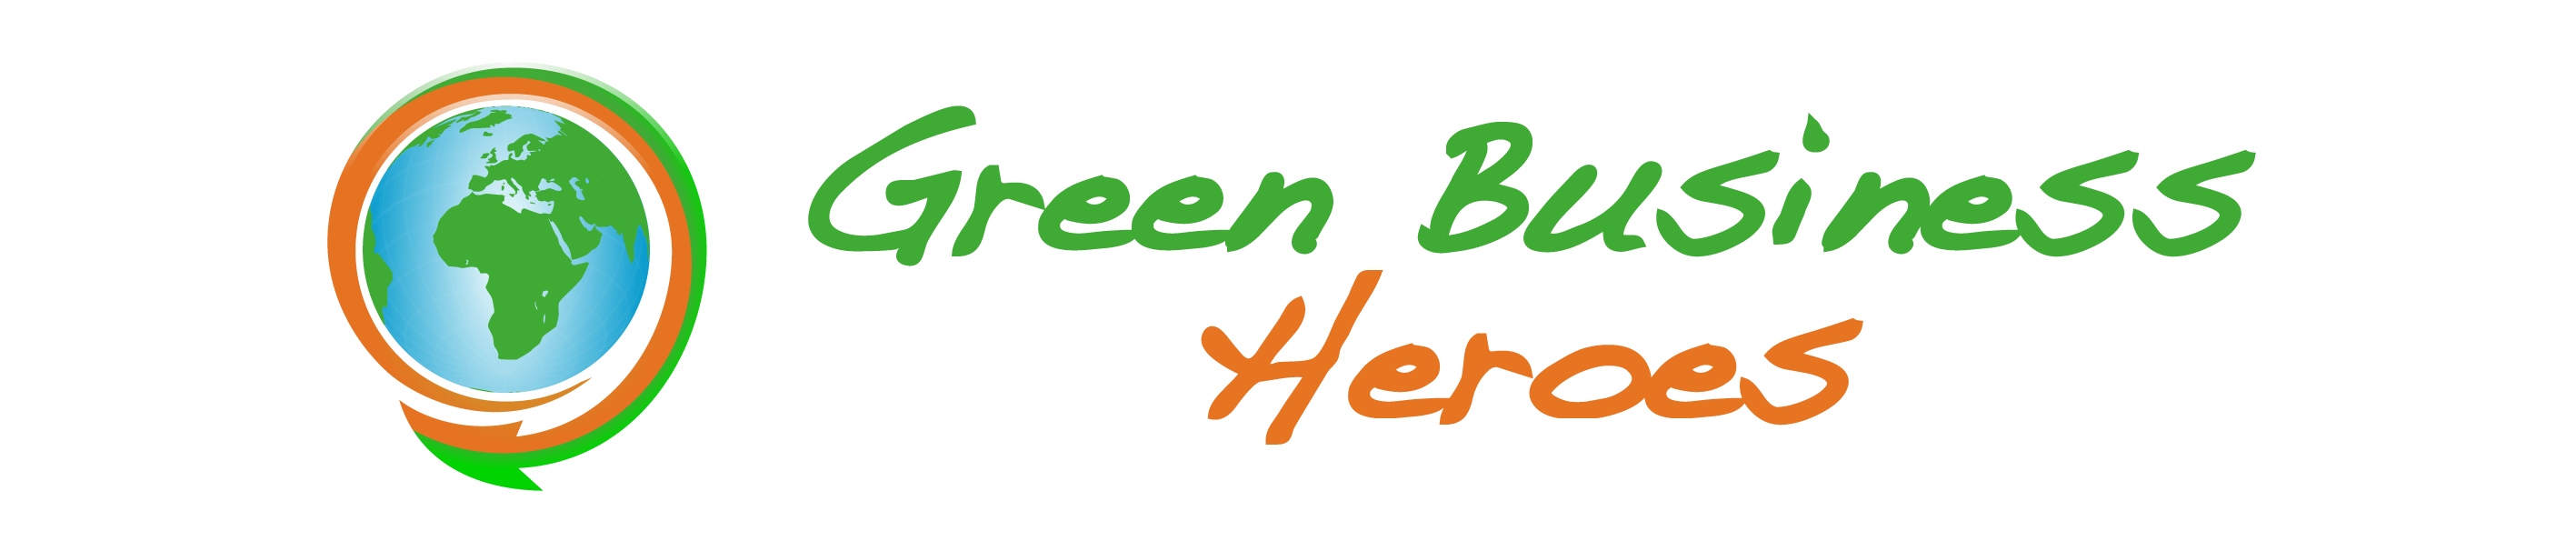 Green Business Heroes